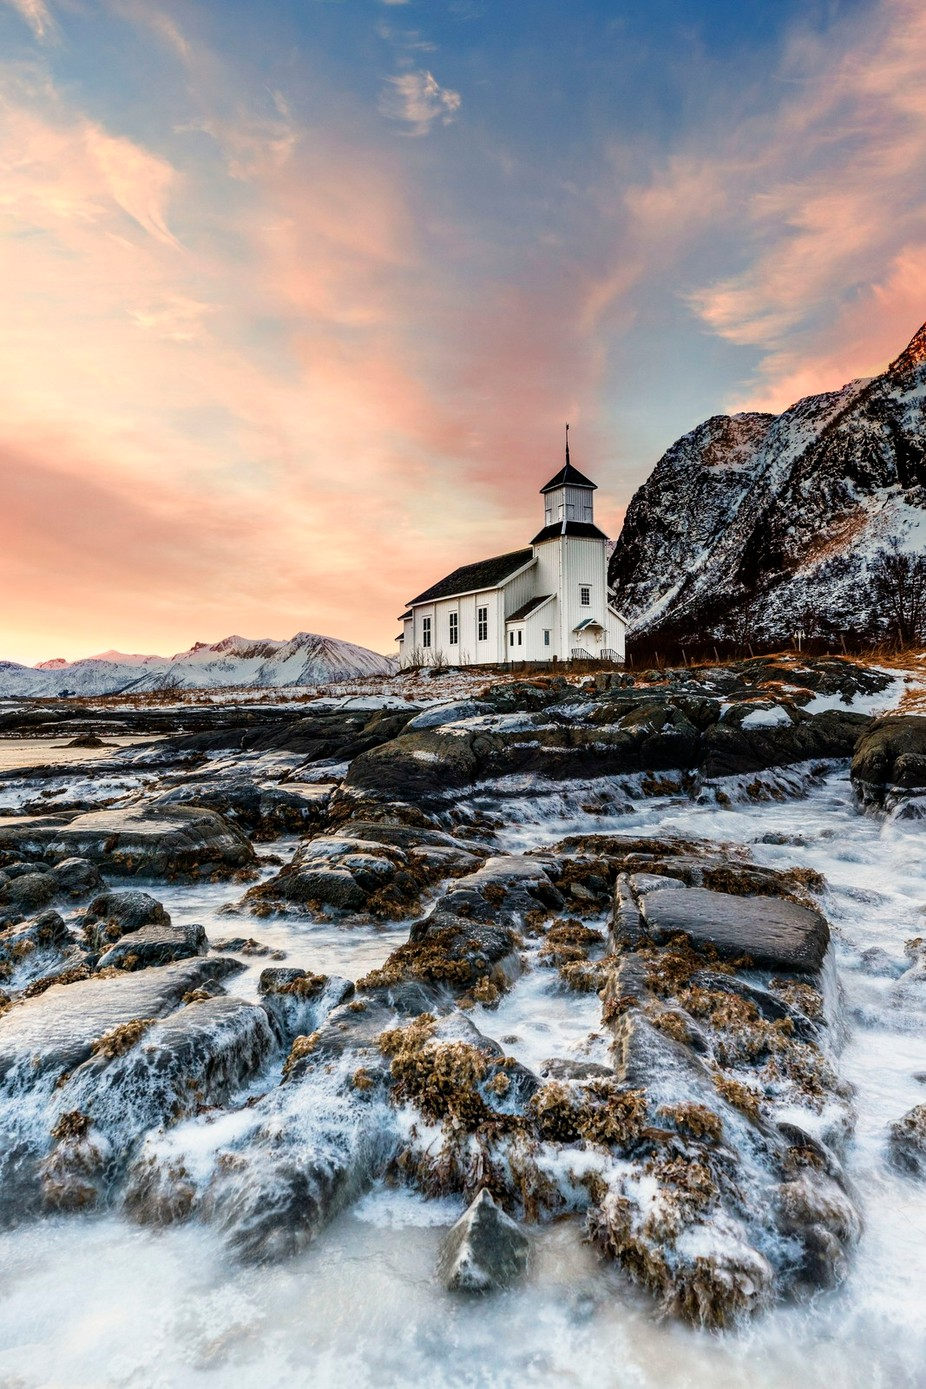 Little White Church by lddove - The Wonders of the World Photo Contest